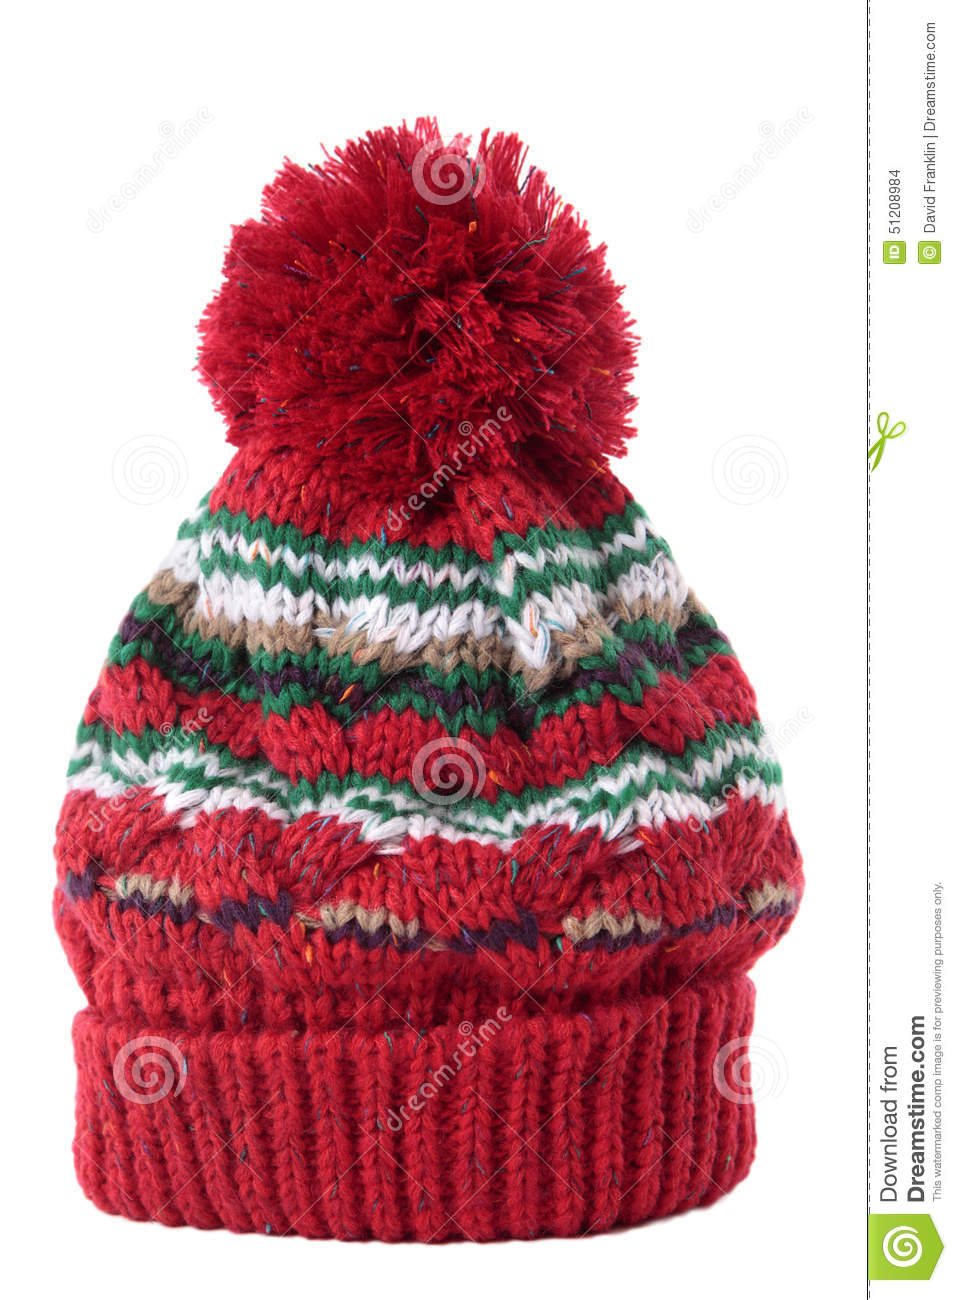 77d3dbc66fd Bobble hat isolated against a white background.